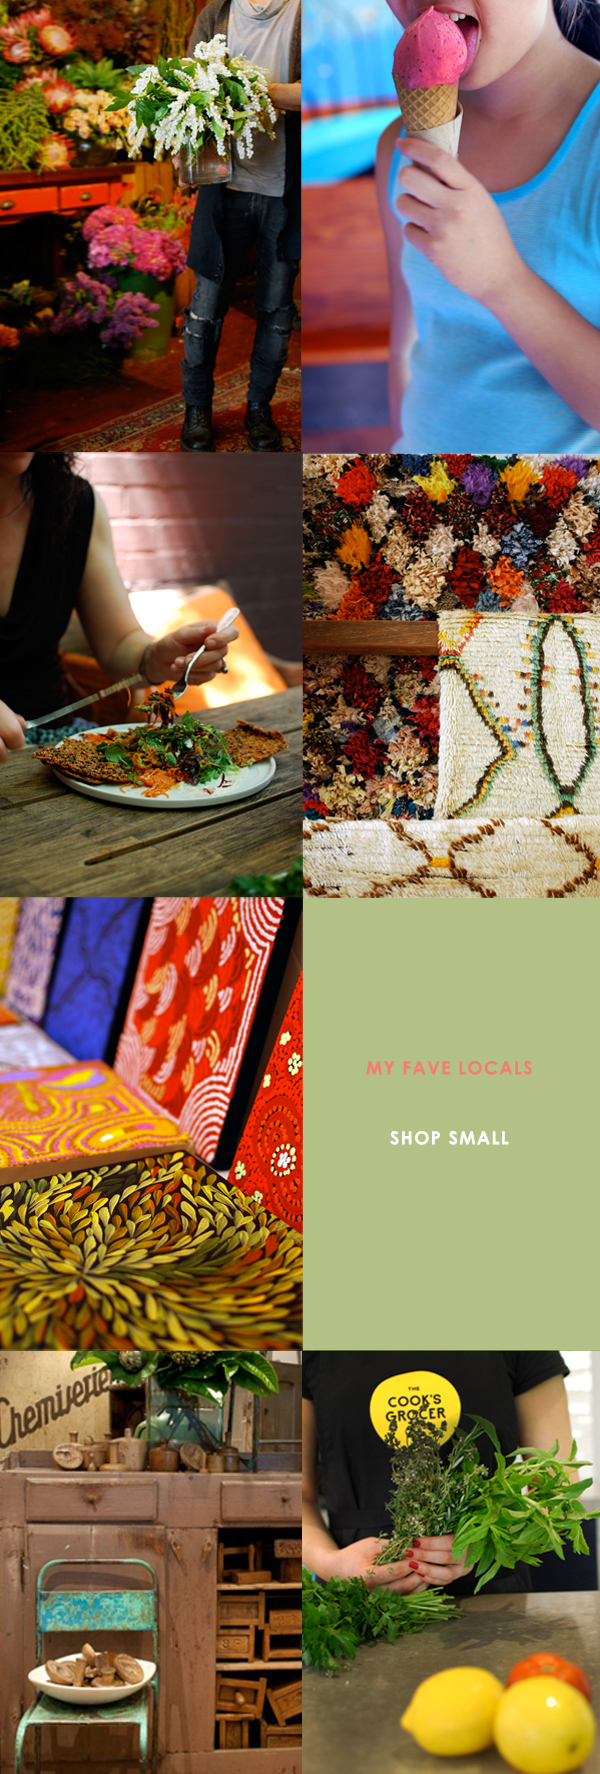 SHOP SMALL via the red thread